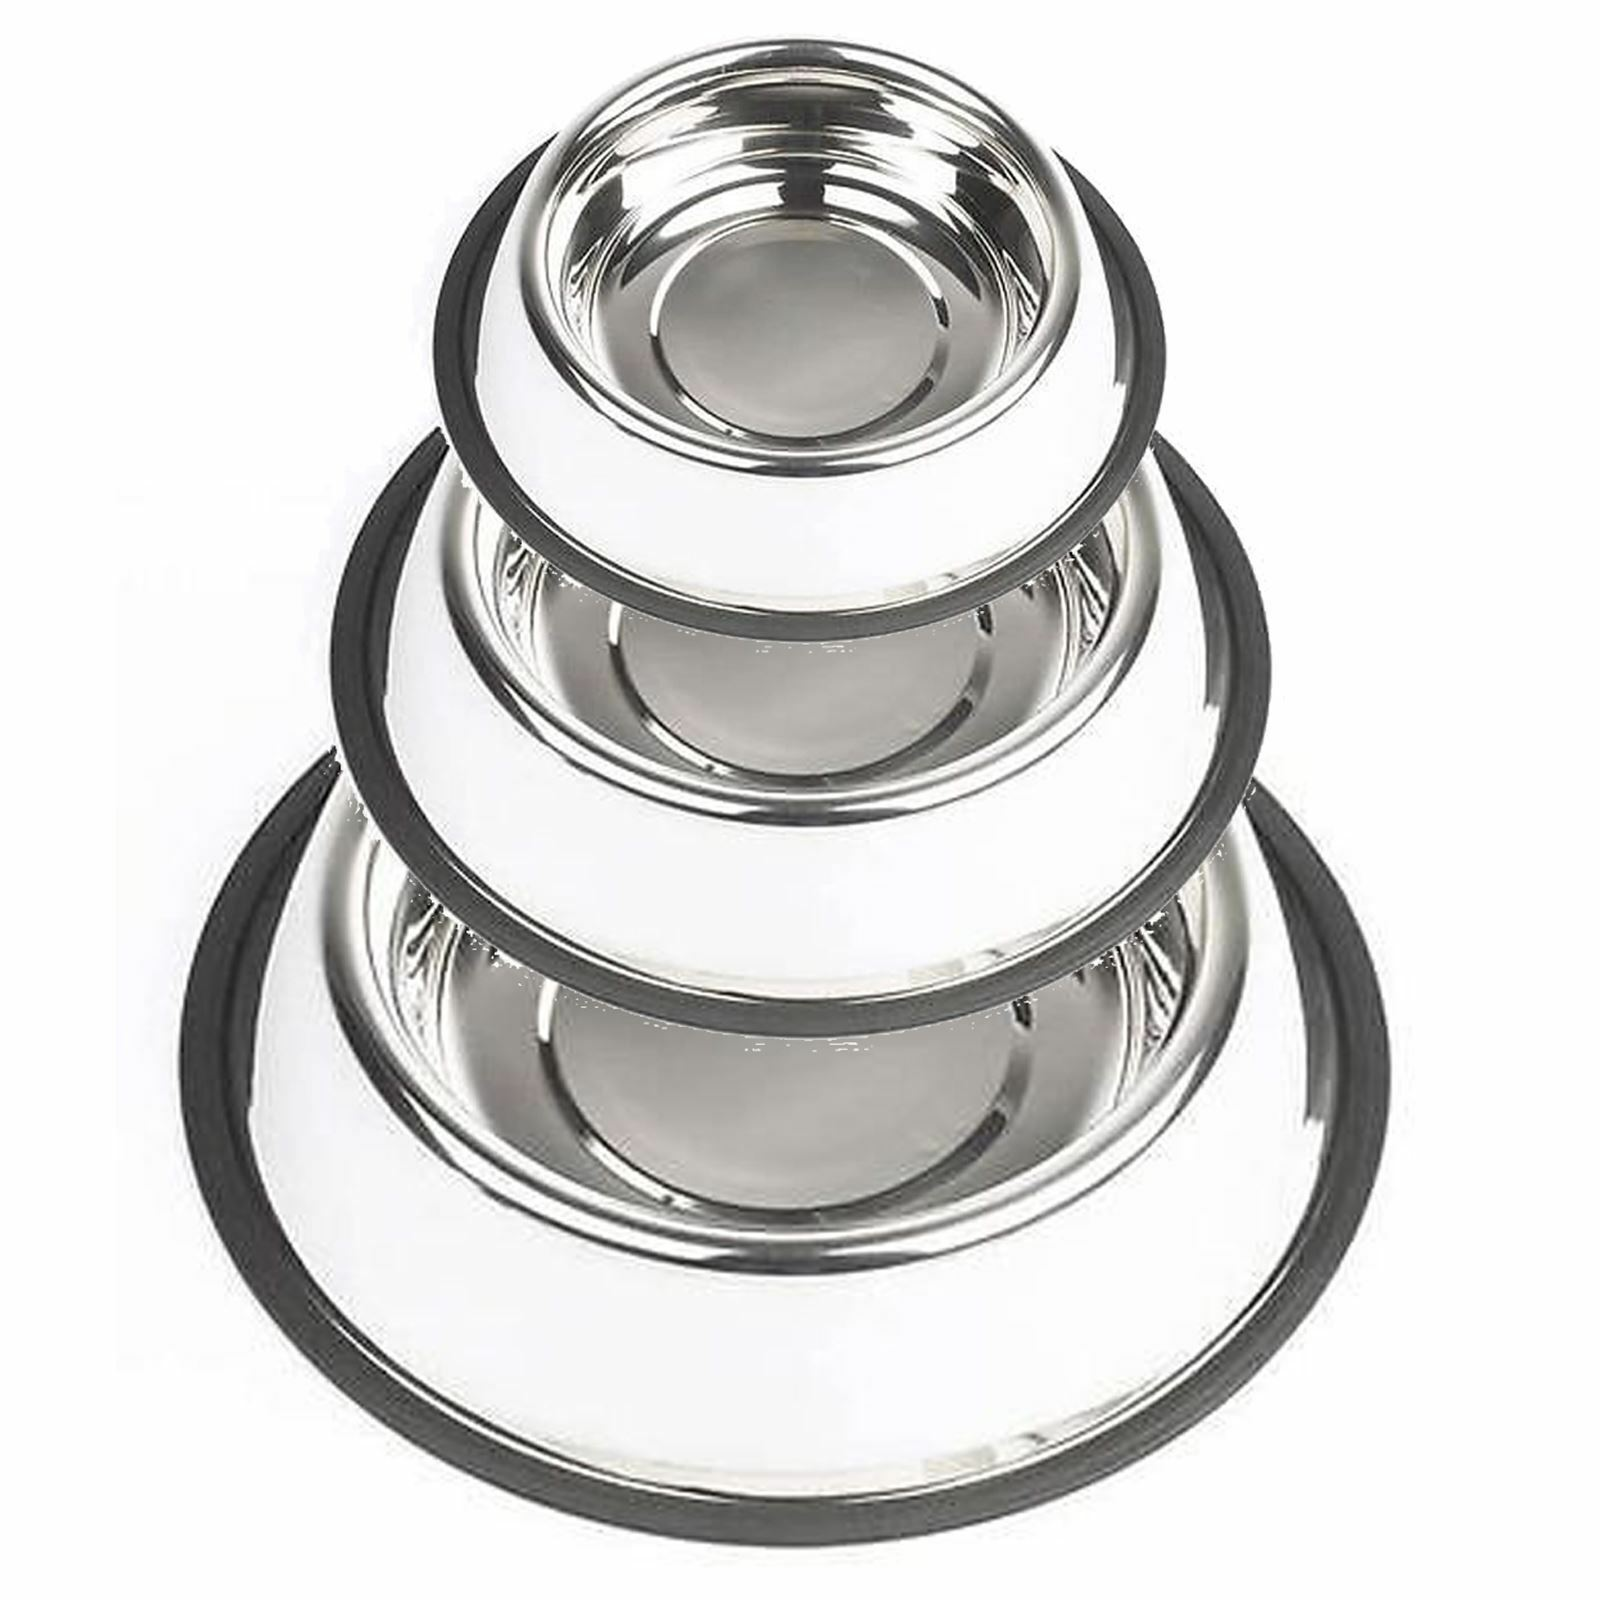 Metal Stainless Steel Cat Dog Drink Bowl Polished Durable Non Slip Rubber Grip